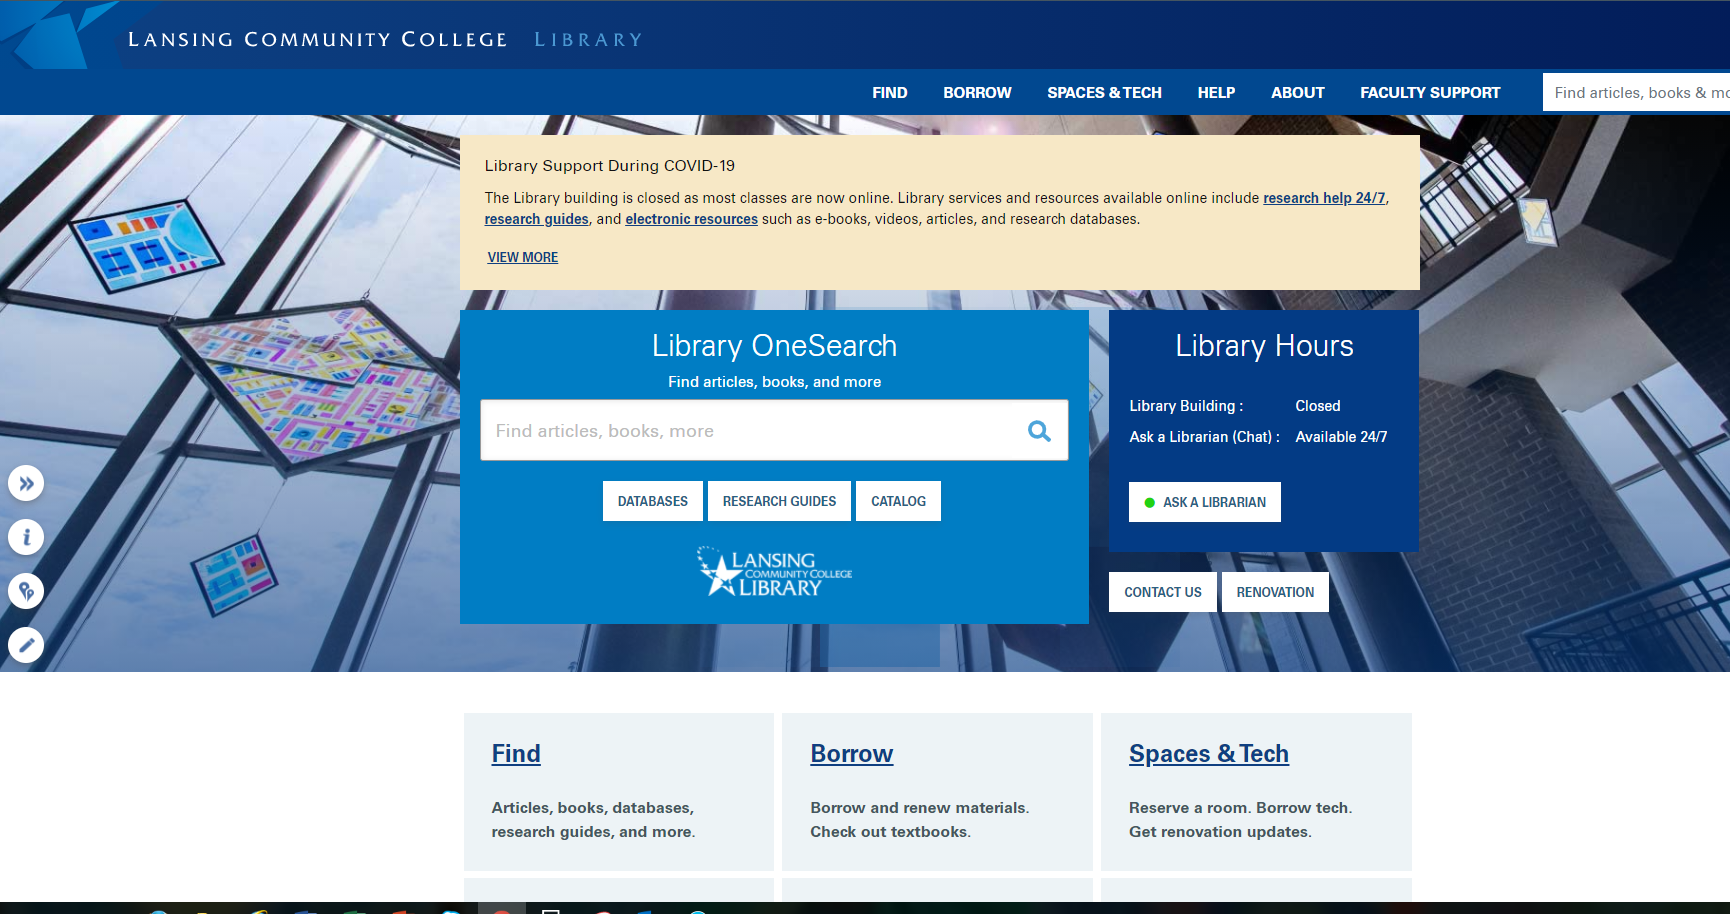 LCC Library homepage with a search box in the middle. Library hours and help.